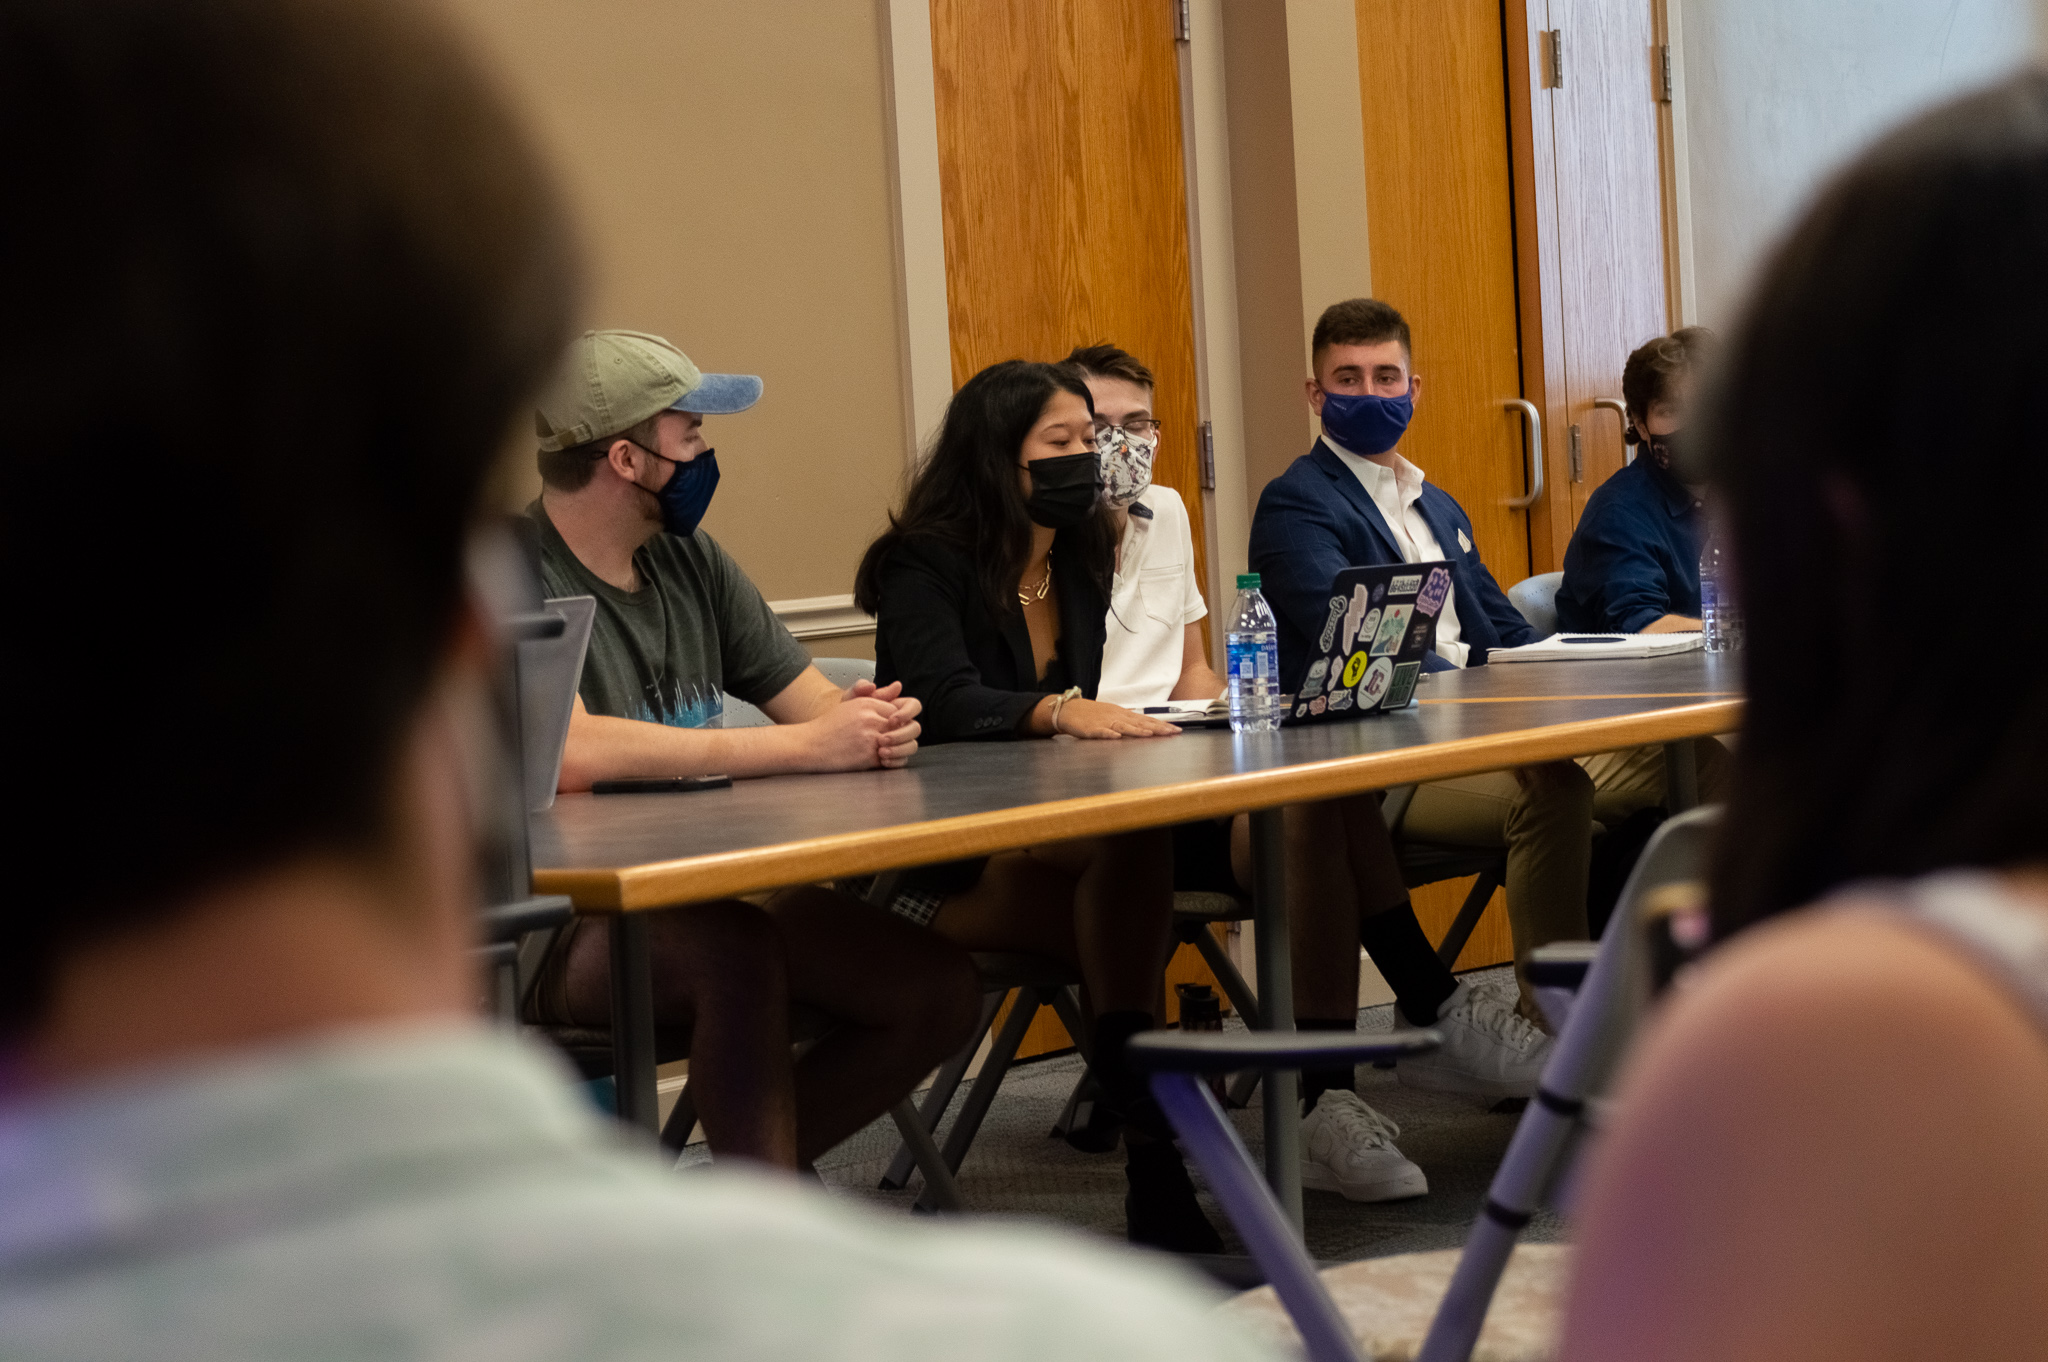 The Student Senate executive board during a meeting (Photo Aly Wein/The Gettysburgian)